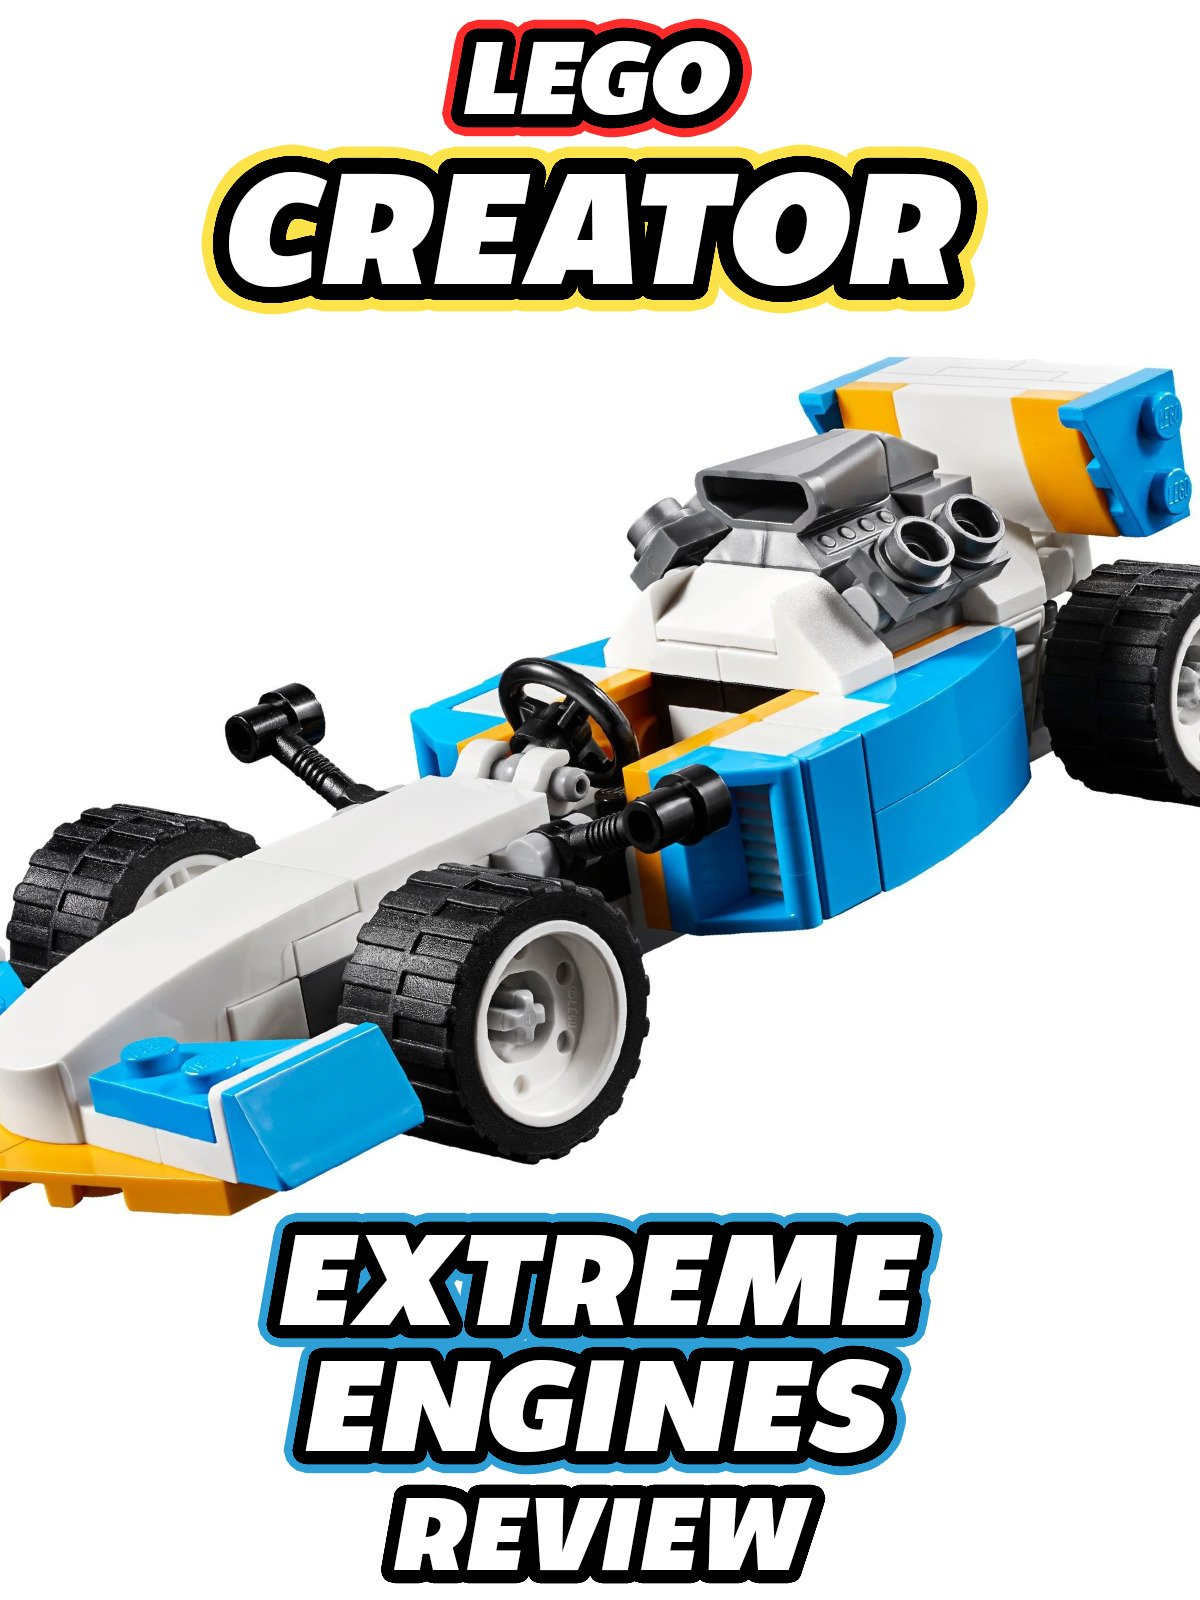 Review: Lego Creator Extreme Engines Review